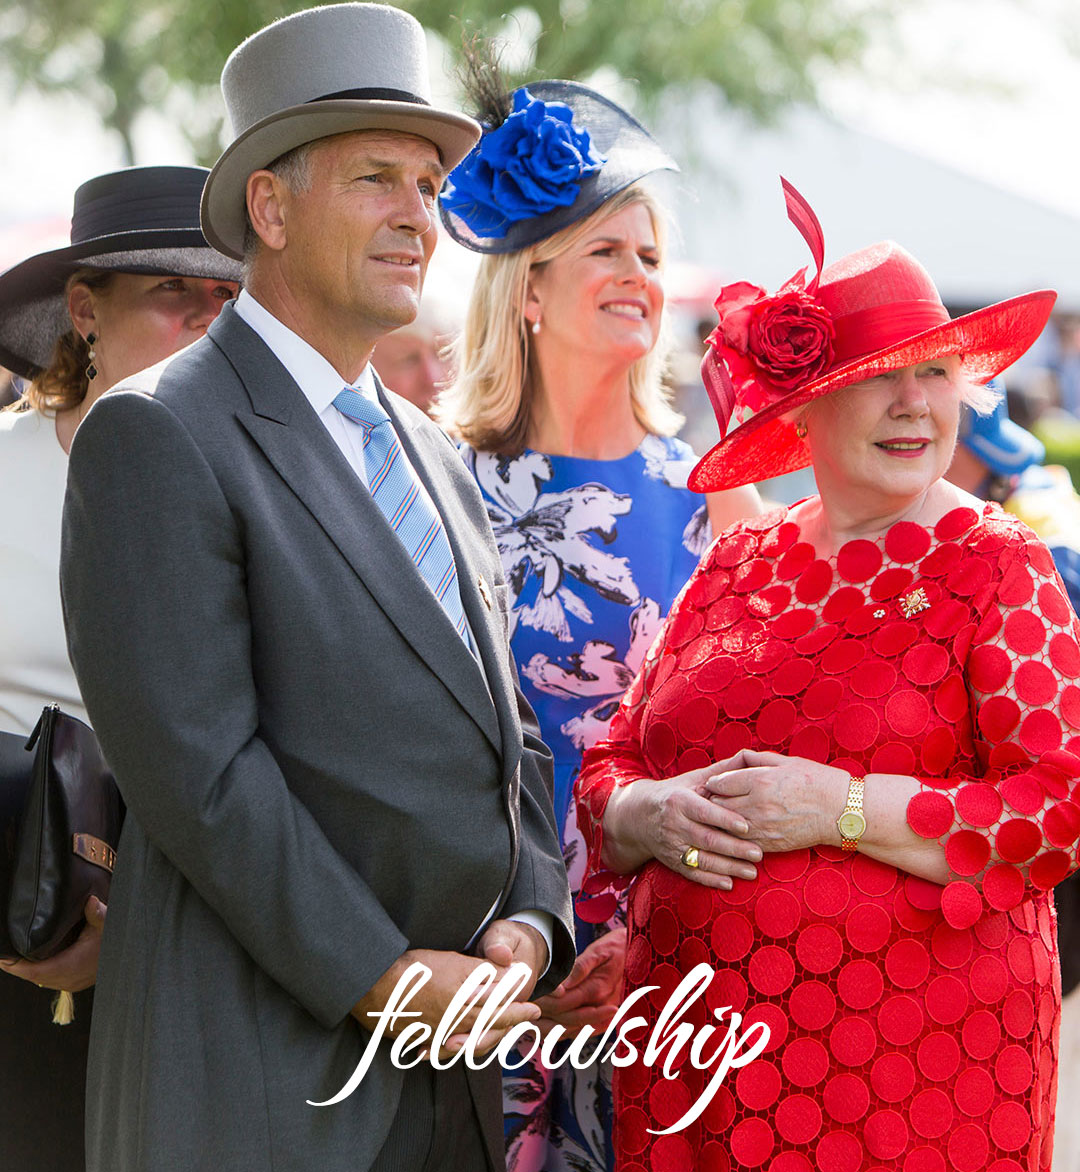 Thoroughbred Race Club - Fellowship